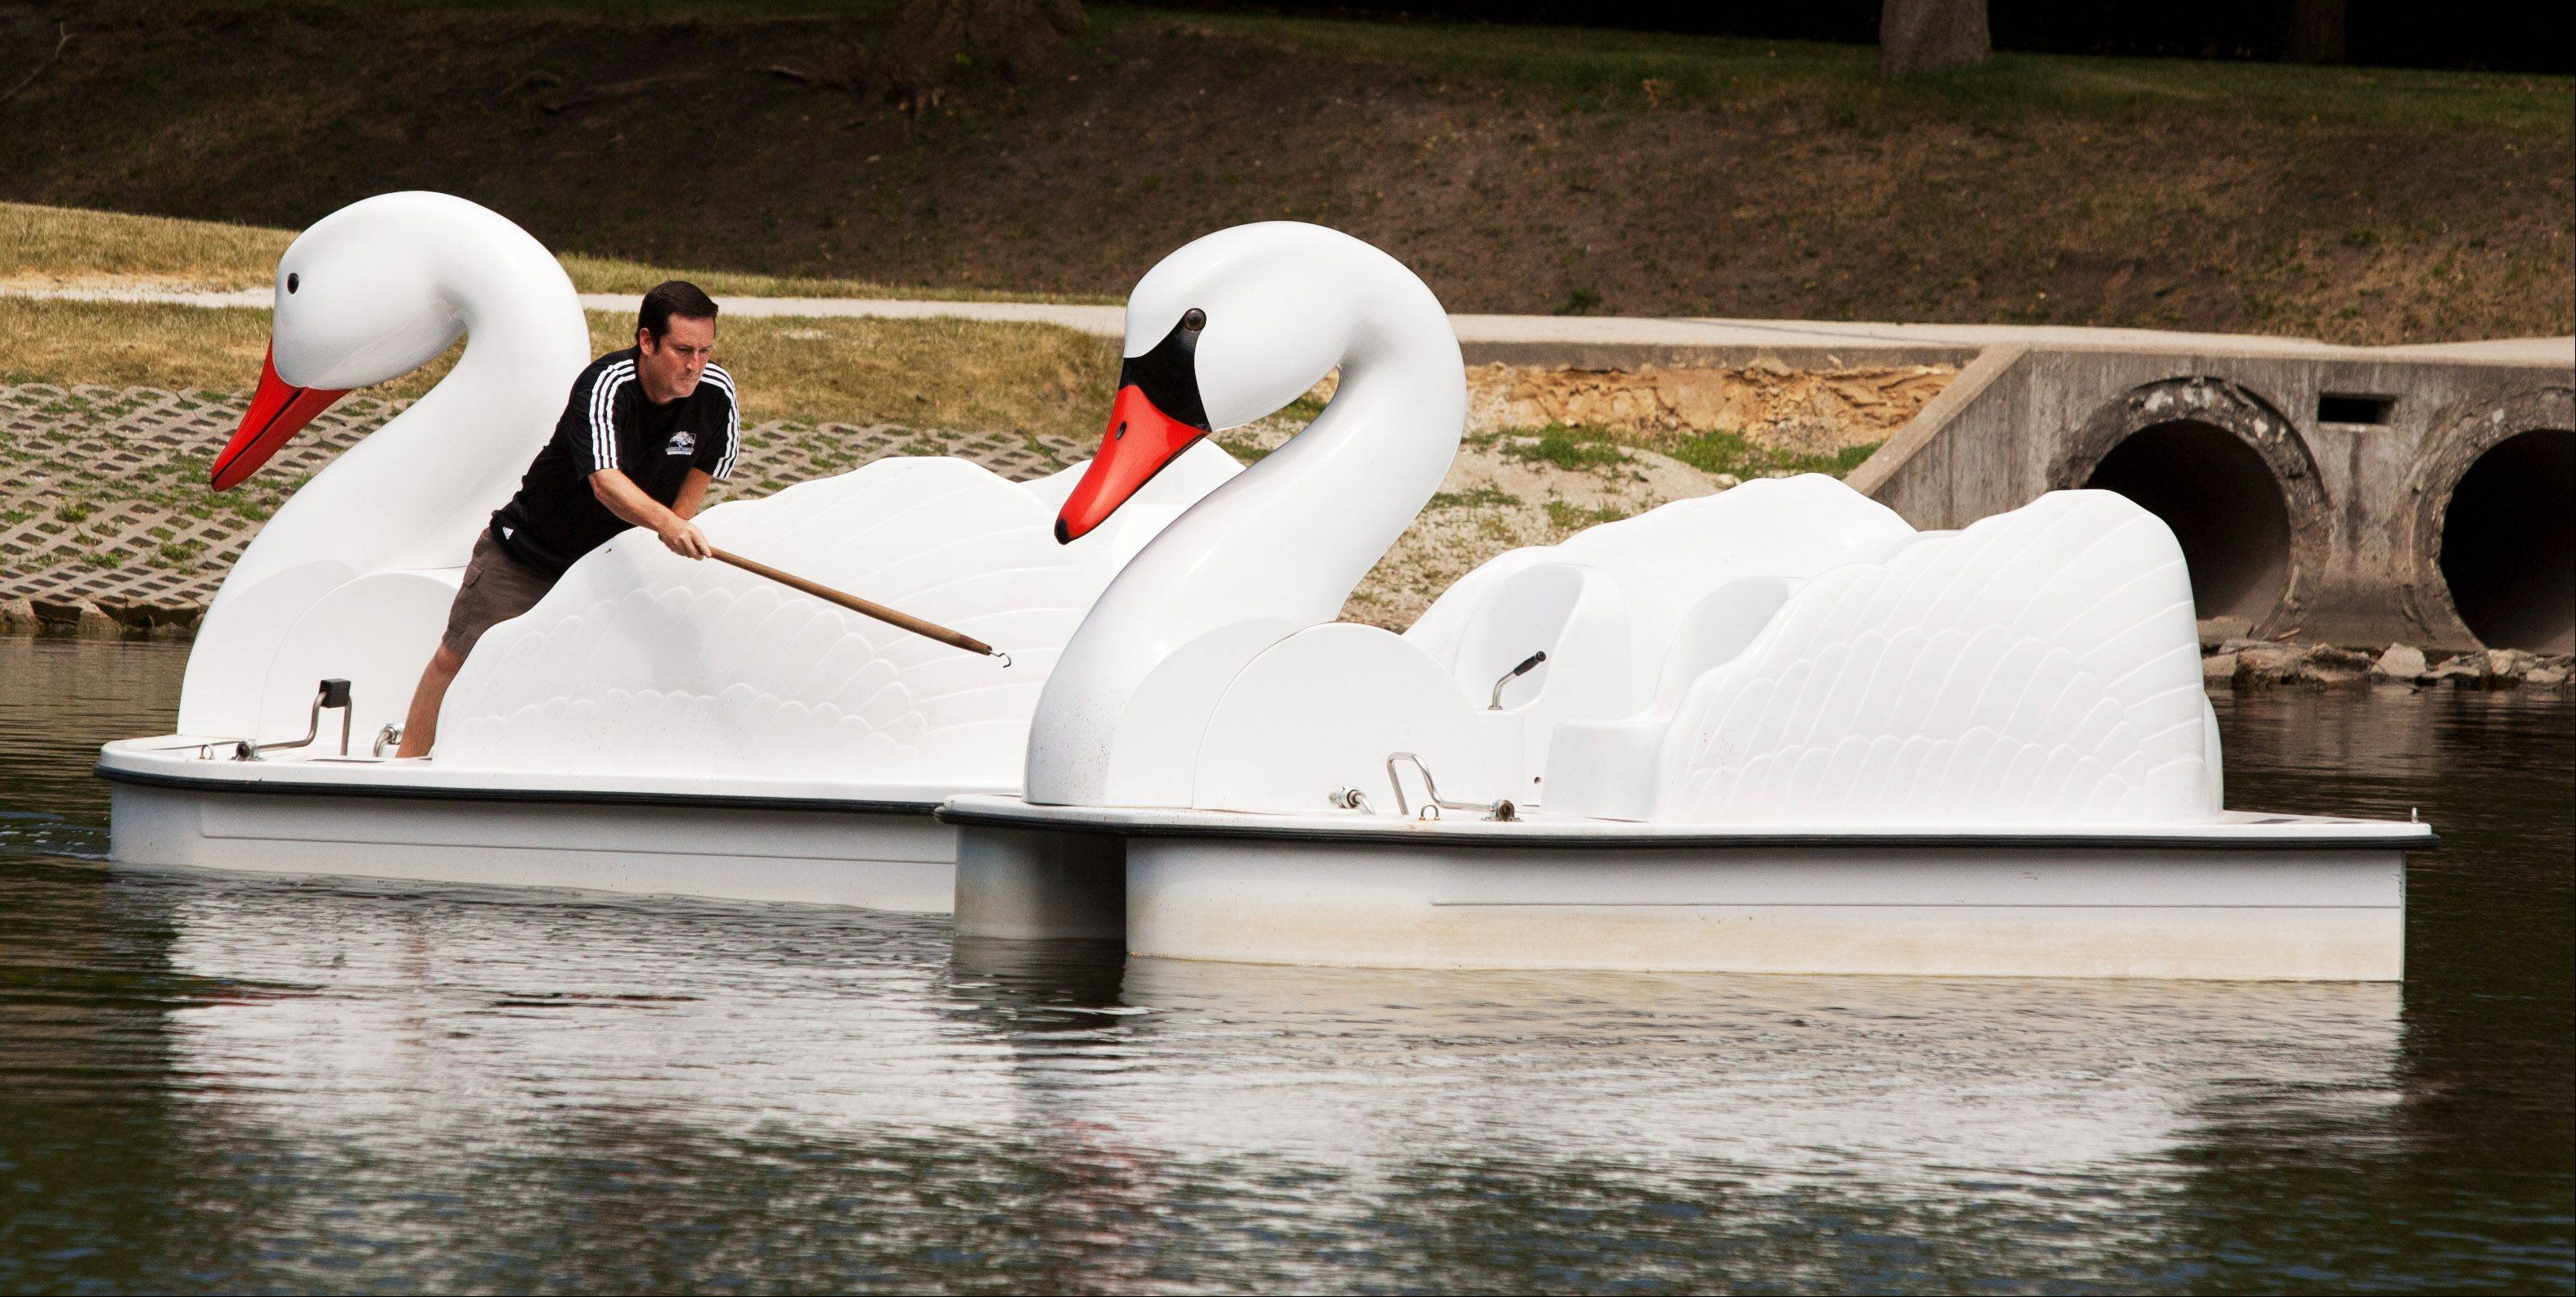 Tim Reinbold of the Oakbrook Terrace Park District corrals a loose paddle boat at the Lake View Nature Center. The paddle boats are one of several activities available to visitors during Wild Wednesdays.